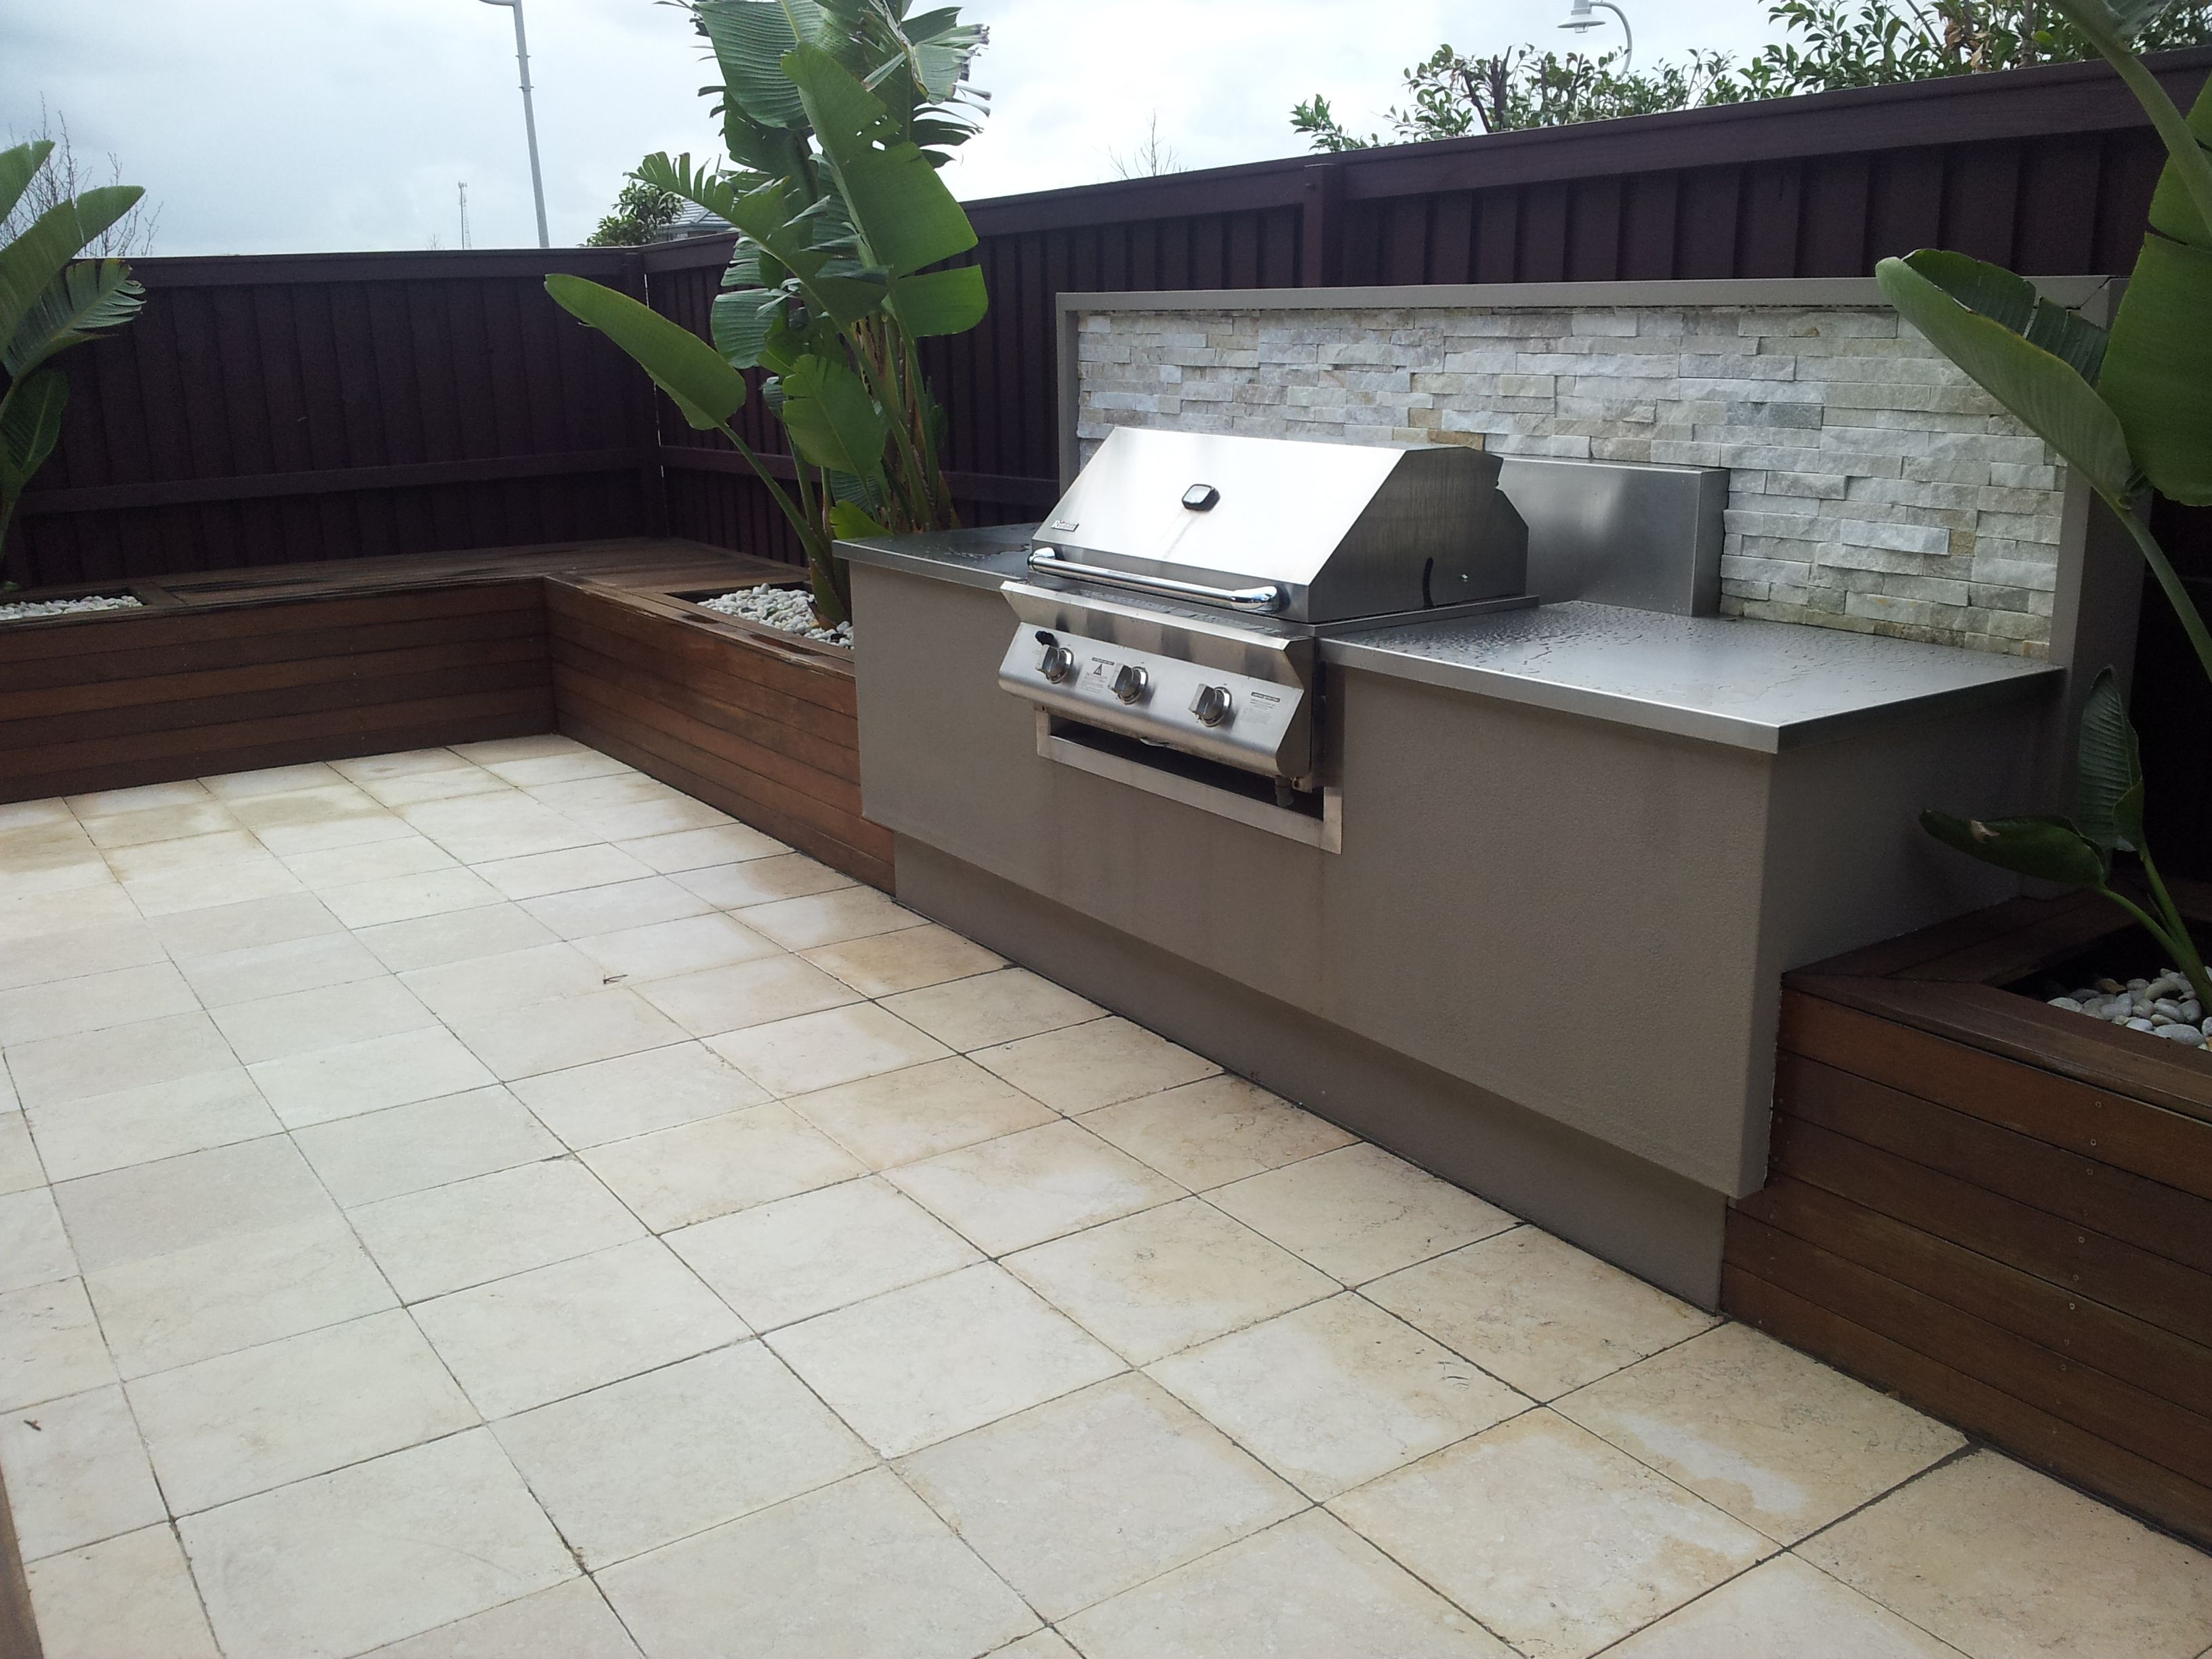 Arbeitsplatte Küche Aussen Built In Bbq Outdoor Kitchen Bbq Pinterest Outdoor